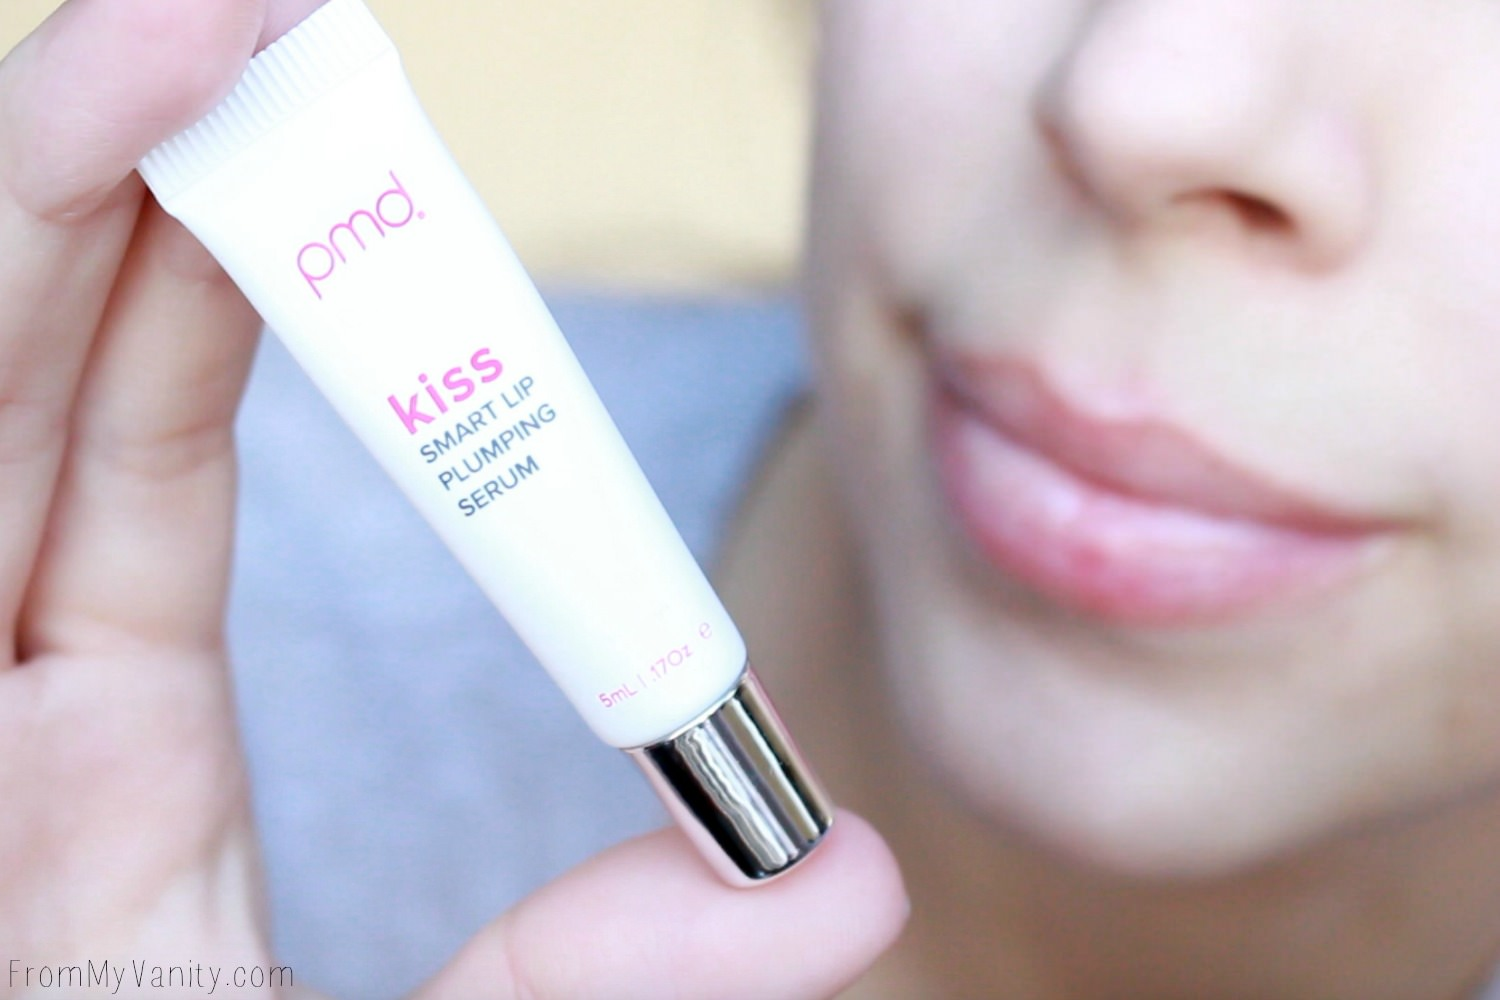 My Experience With The Pmd Kiss Lip Plumping System From My Vanity